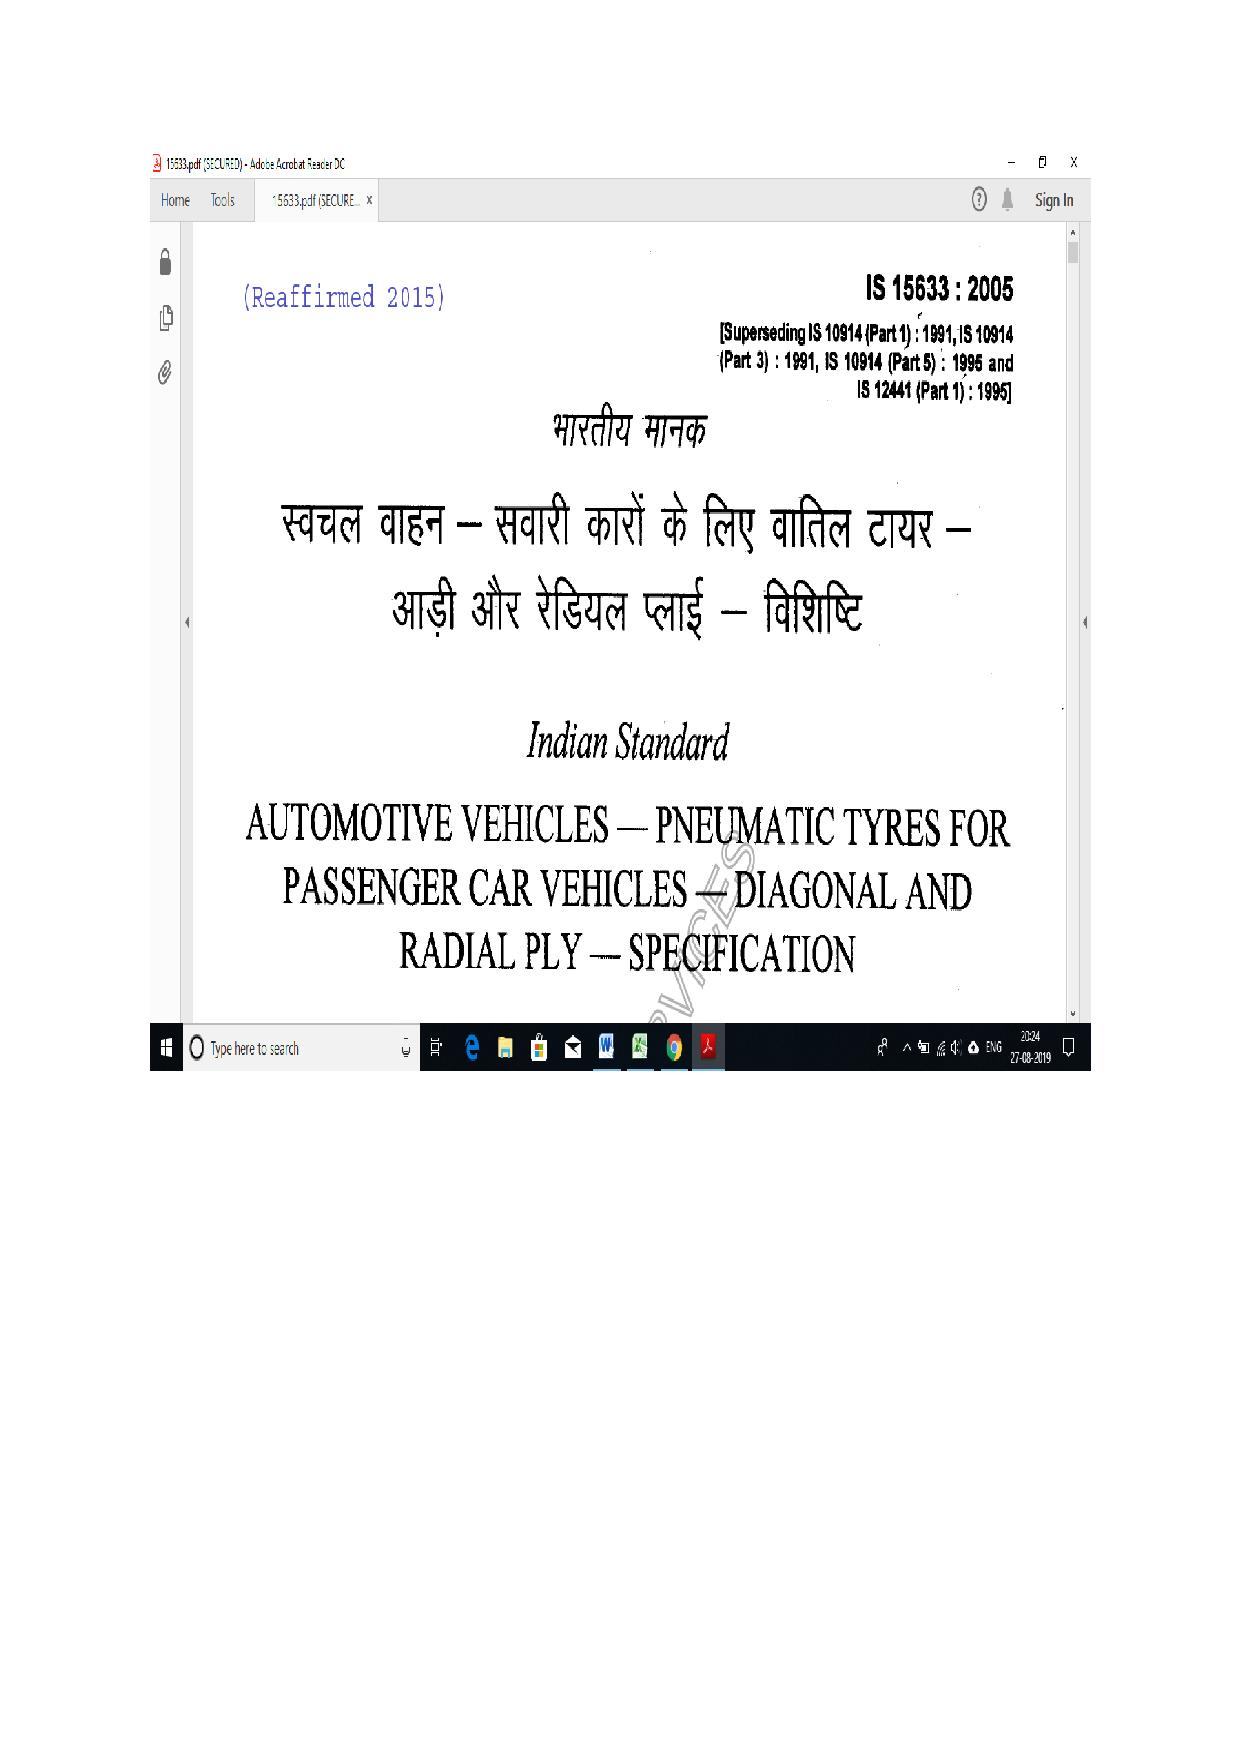 Buy Indian Standard IS 15633- Automotive Vehicles- Pneumatic Tyres for Passenger Car Vehicles